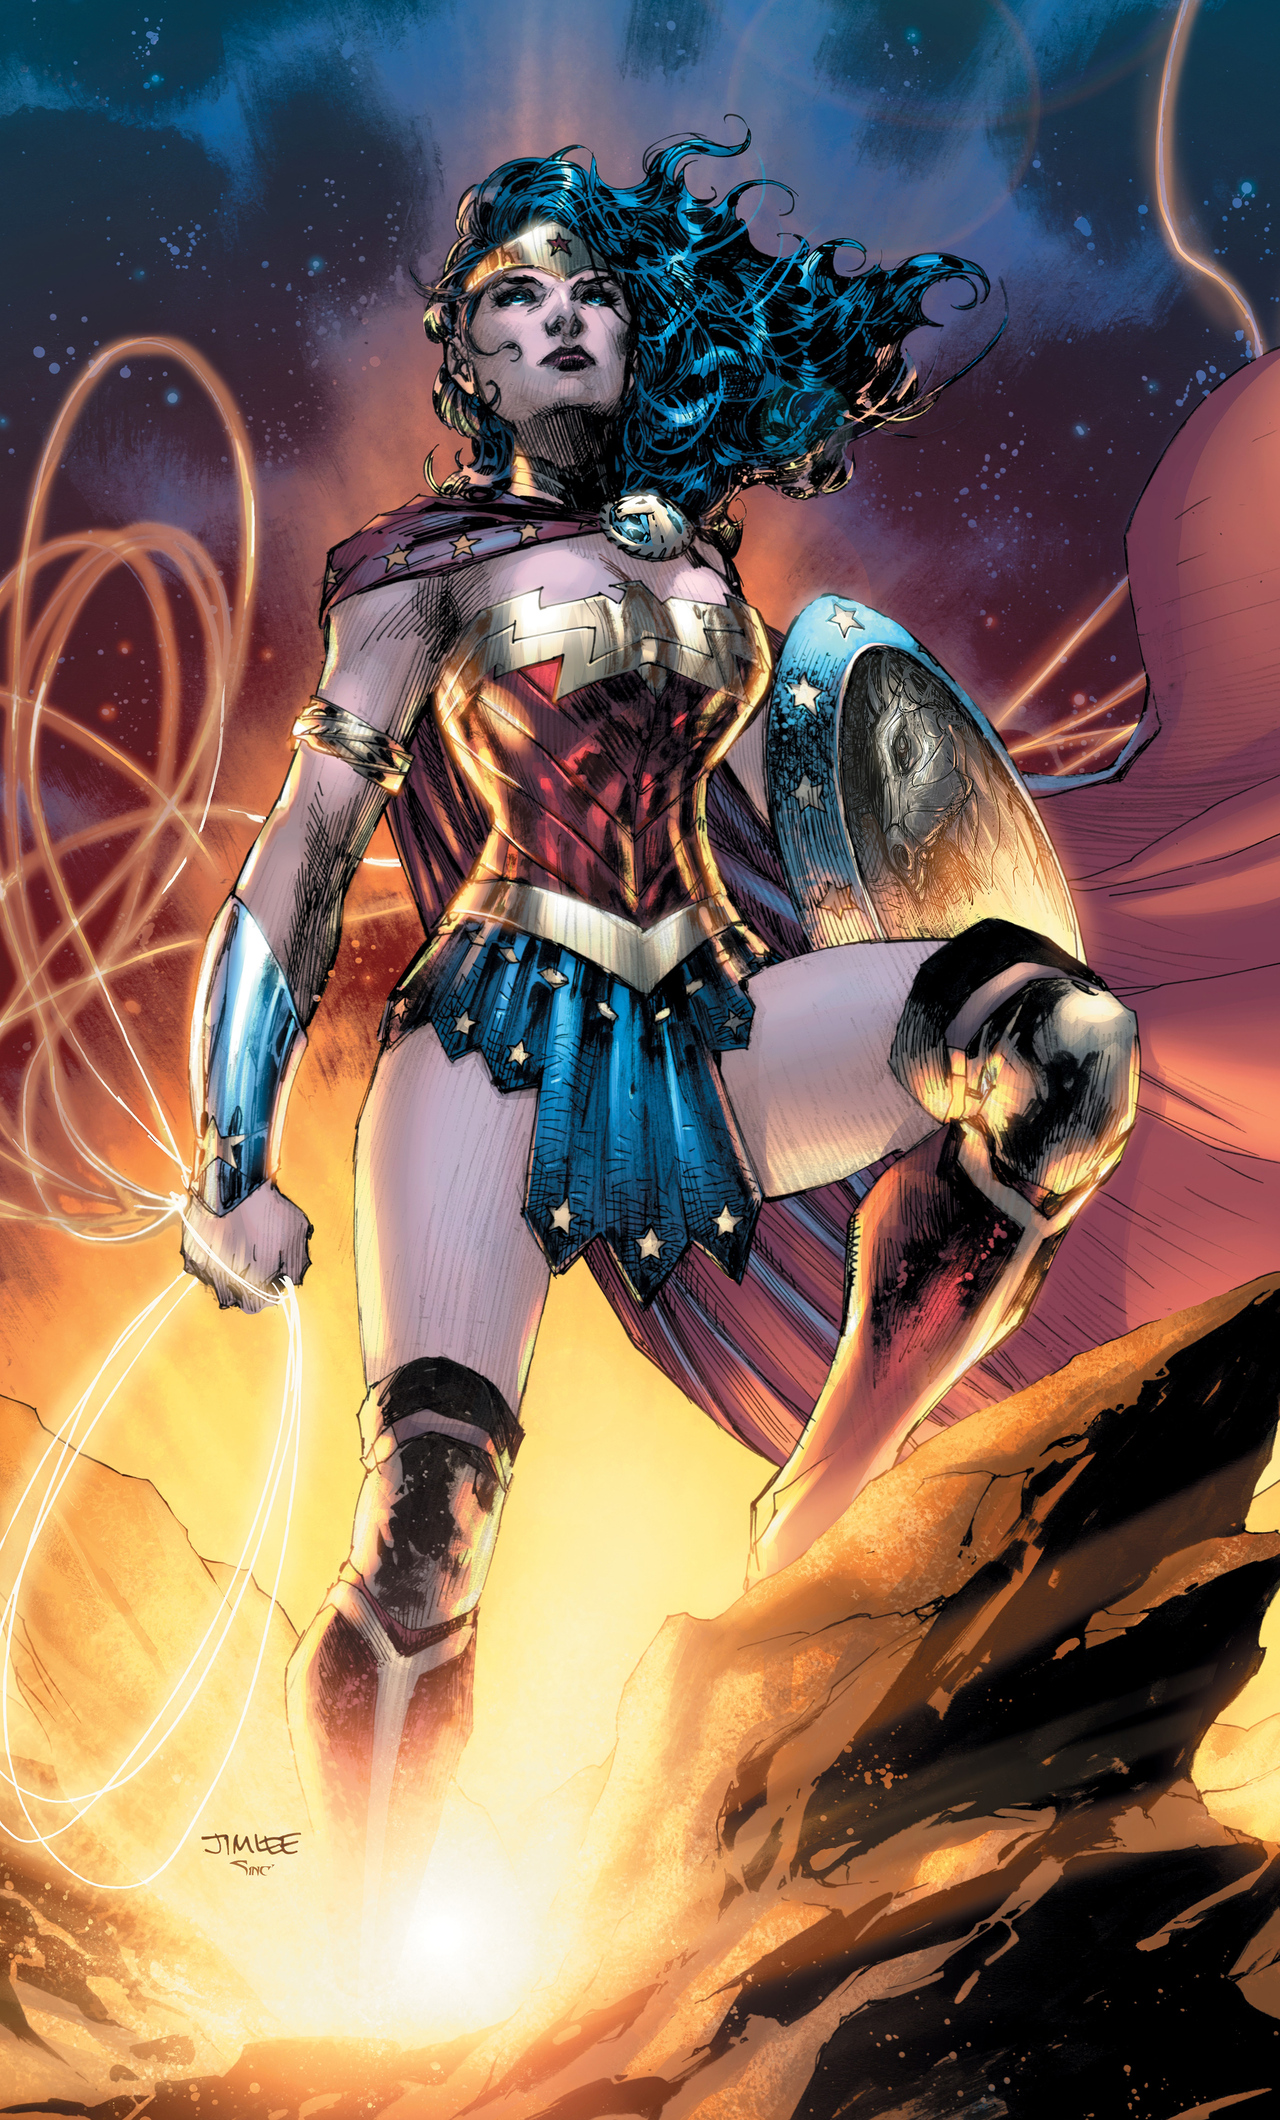 1280x2120 Wonder Woman Dc Comic Artwork iPhone 6+ HD 4k Wallpapers, Images,  Backgrounds, Photos and Pictures